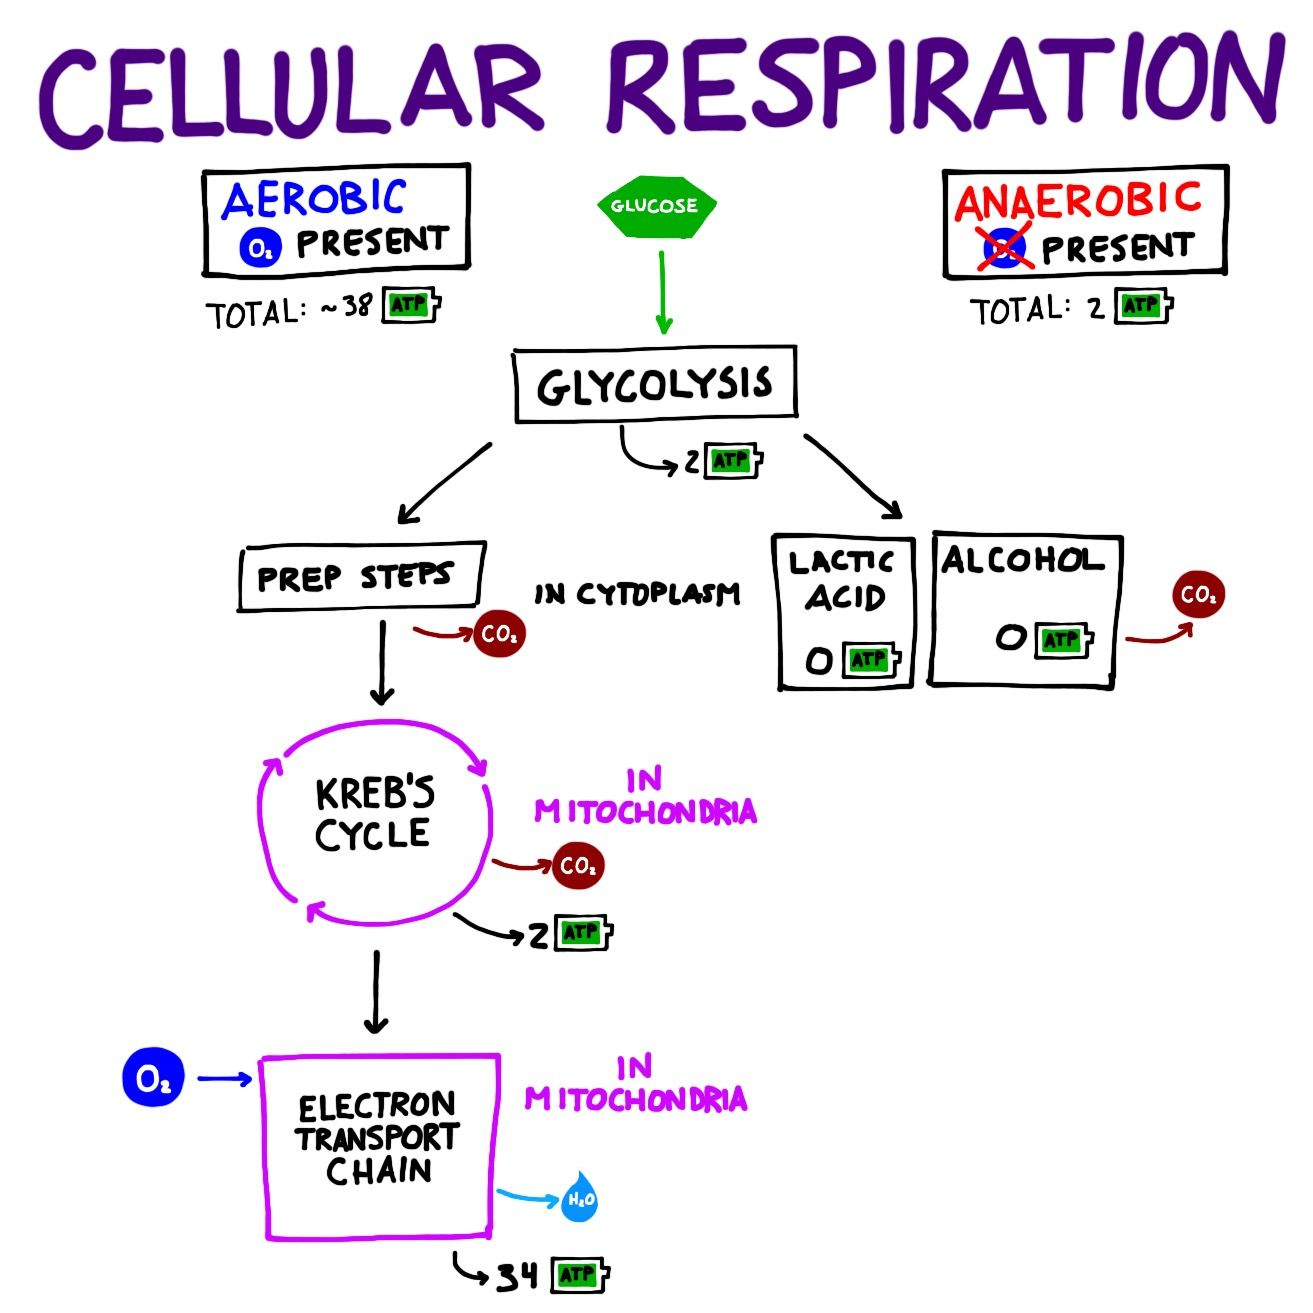 explain krebs cycle with diagram 24 volt battery wiring overview of the major steps cellular respiration